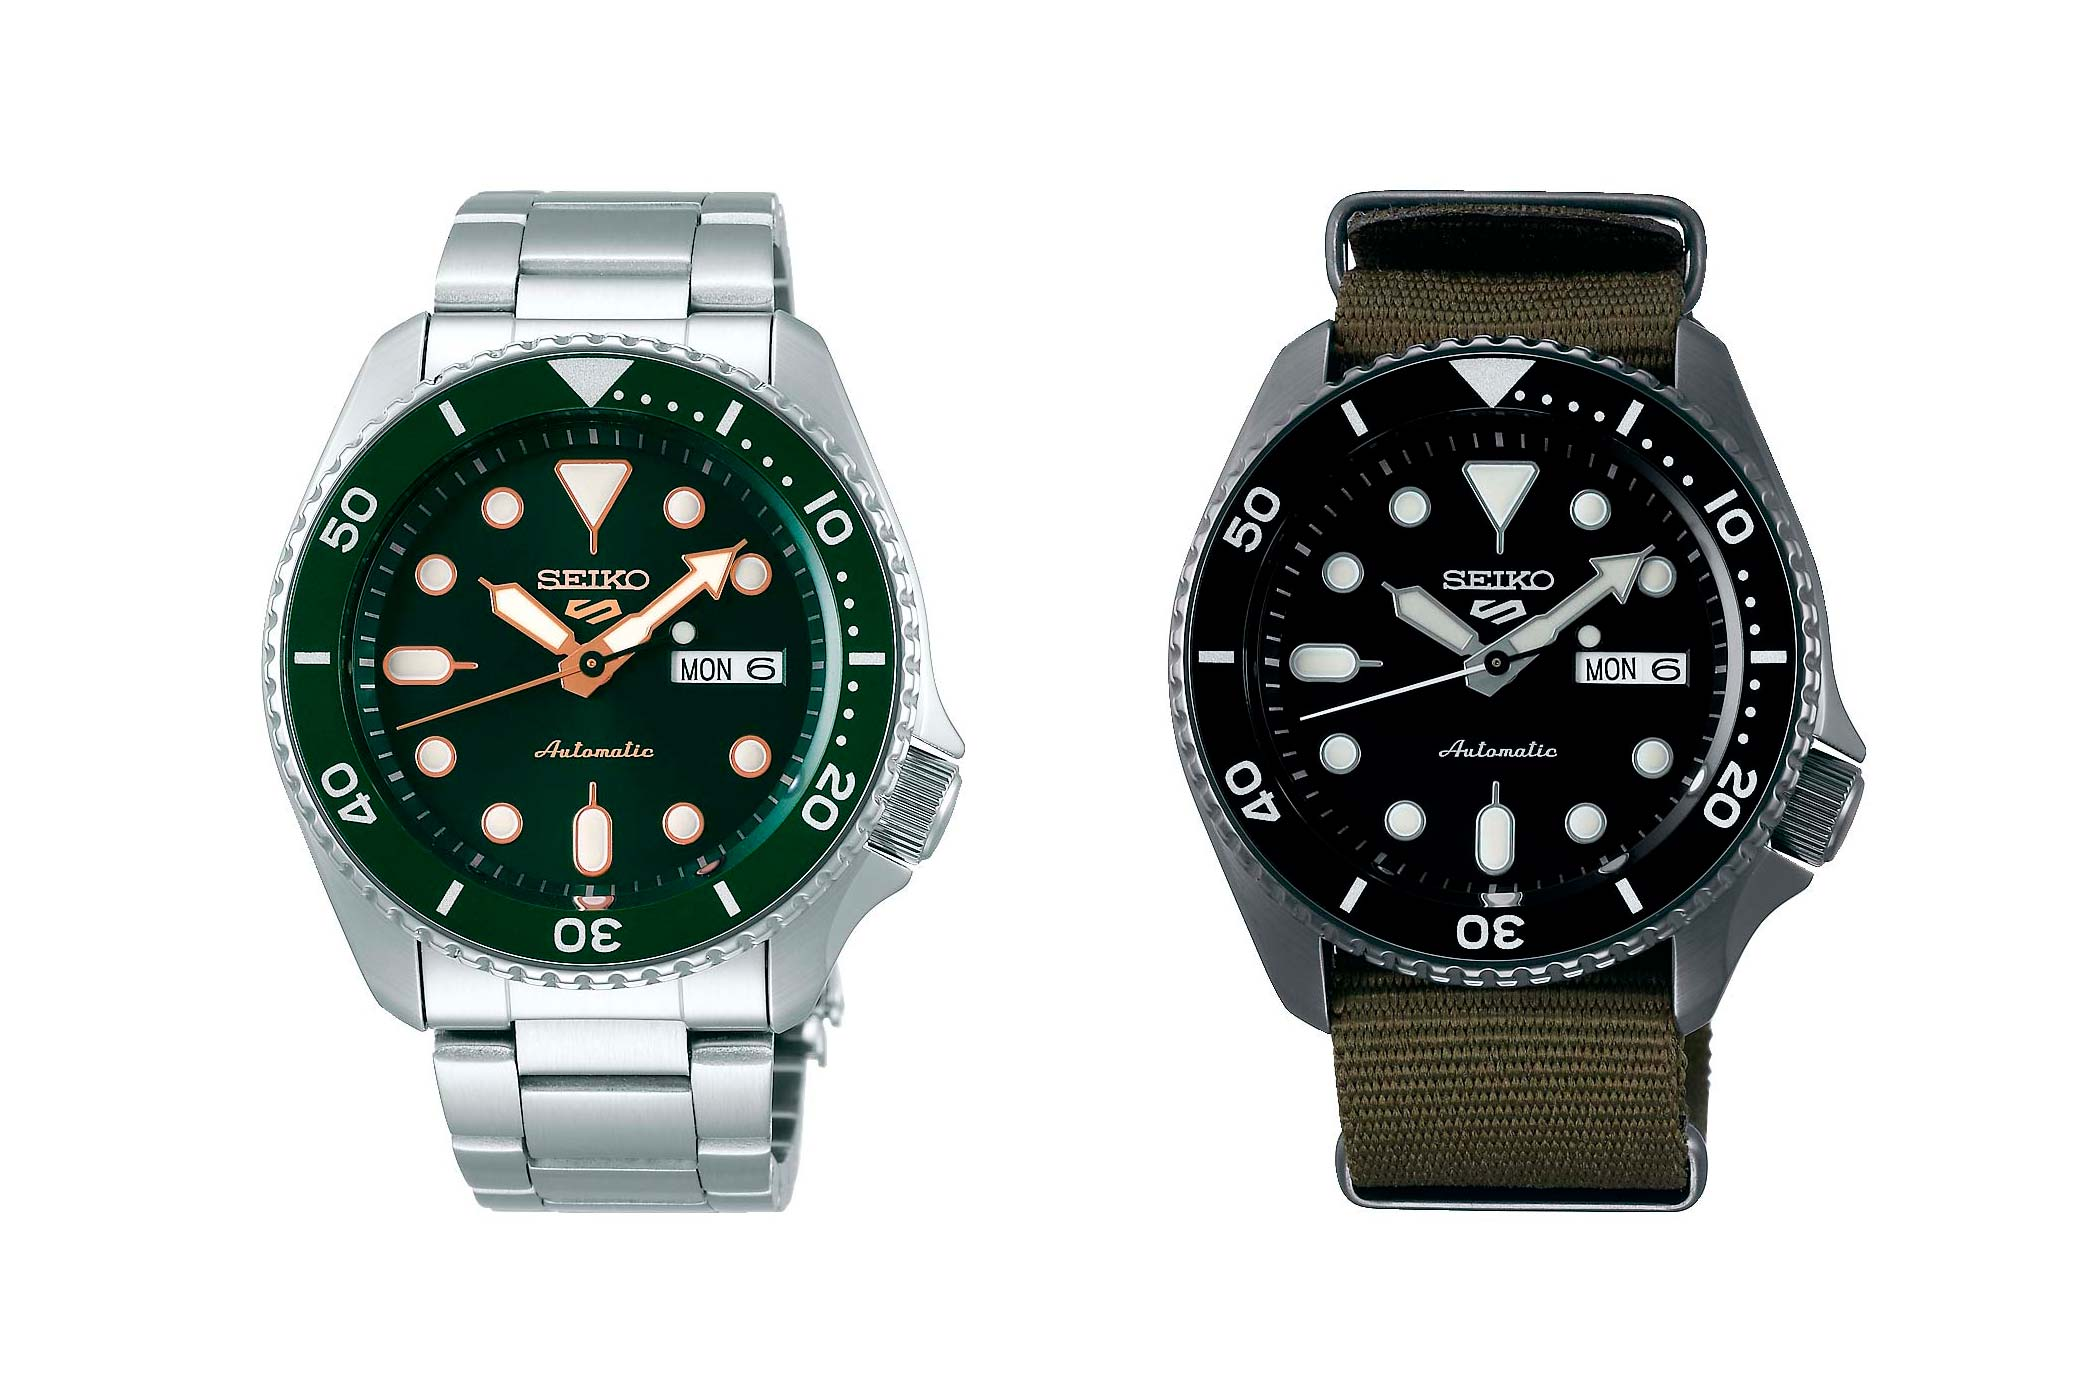 The 2019 Seiko 5 New And Revamped Monochrome Watches